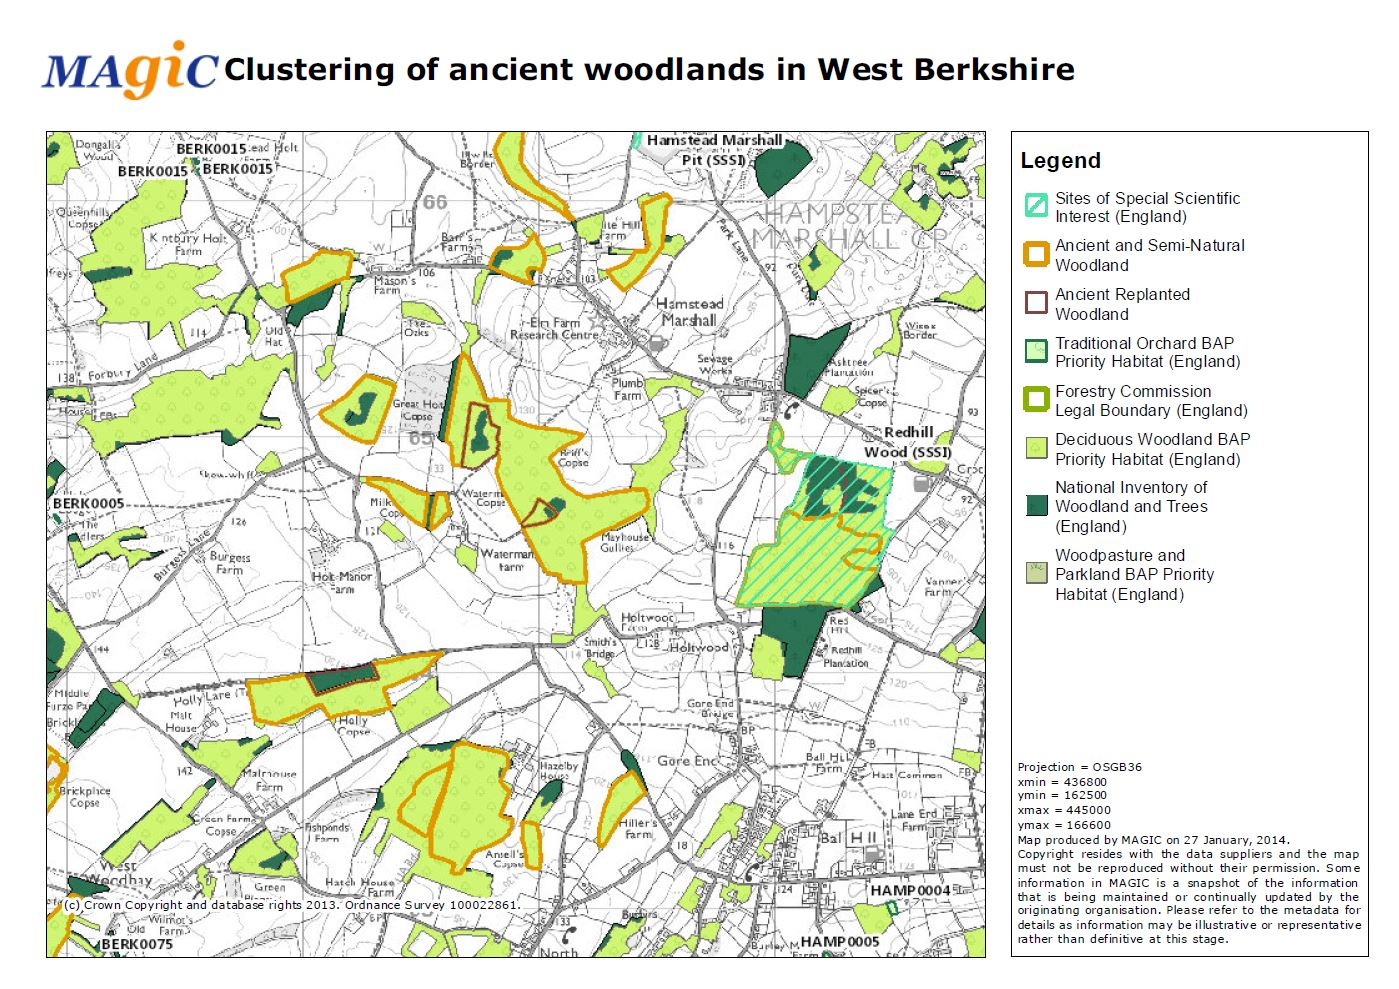 Ancient woodland clusters in West Berkshire